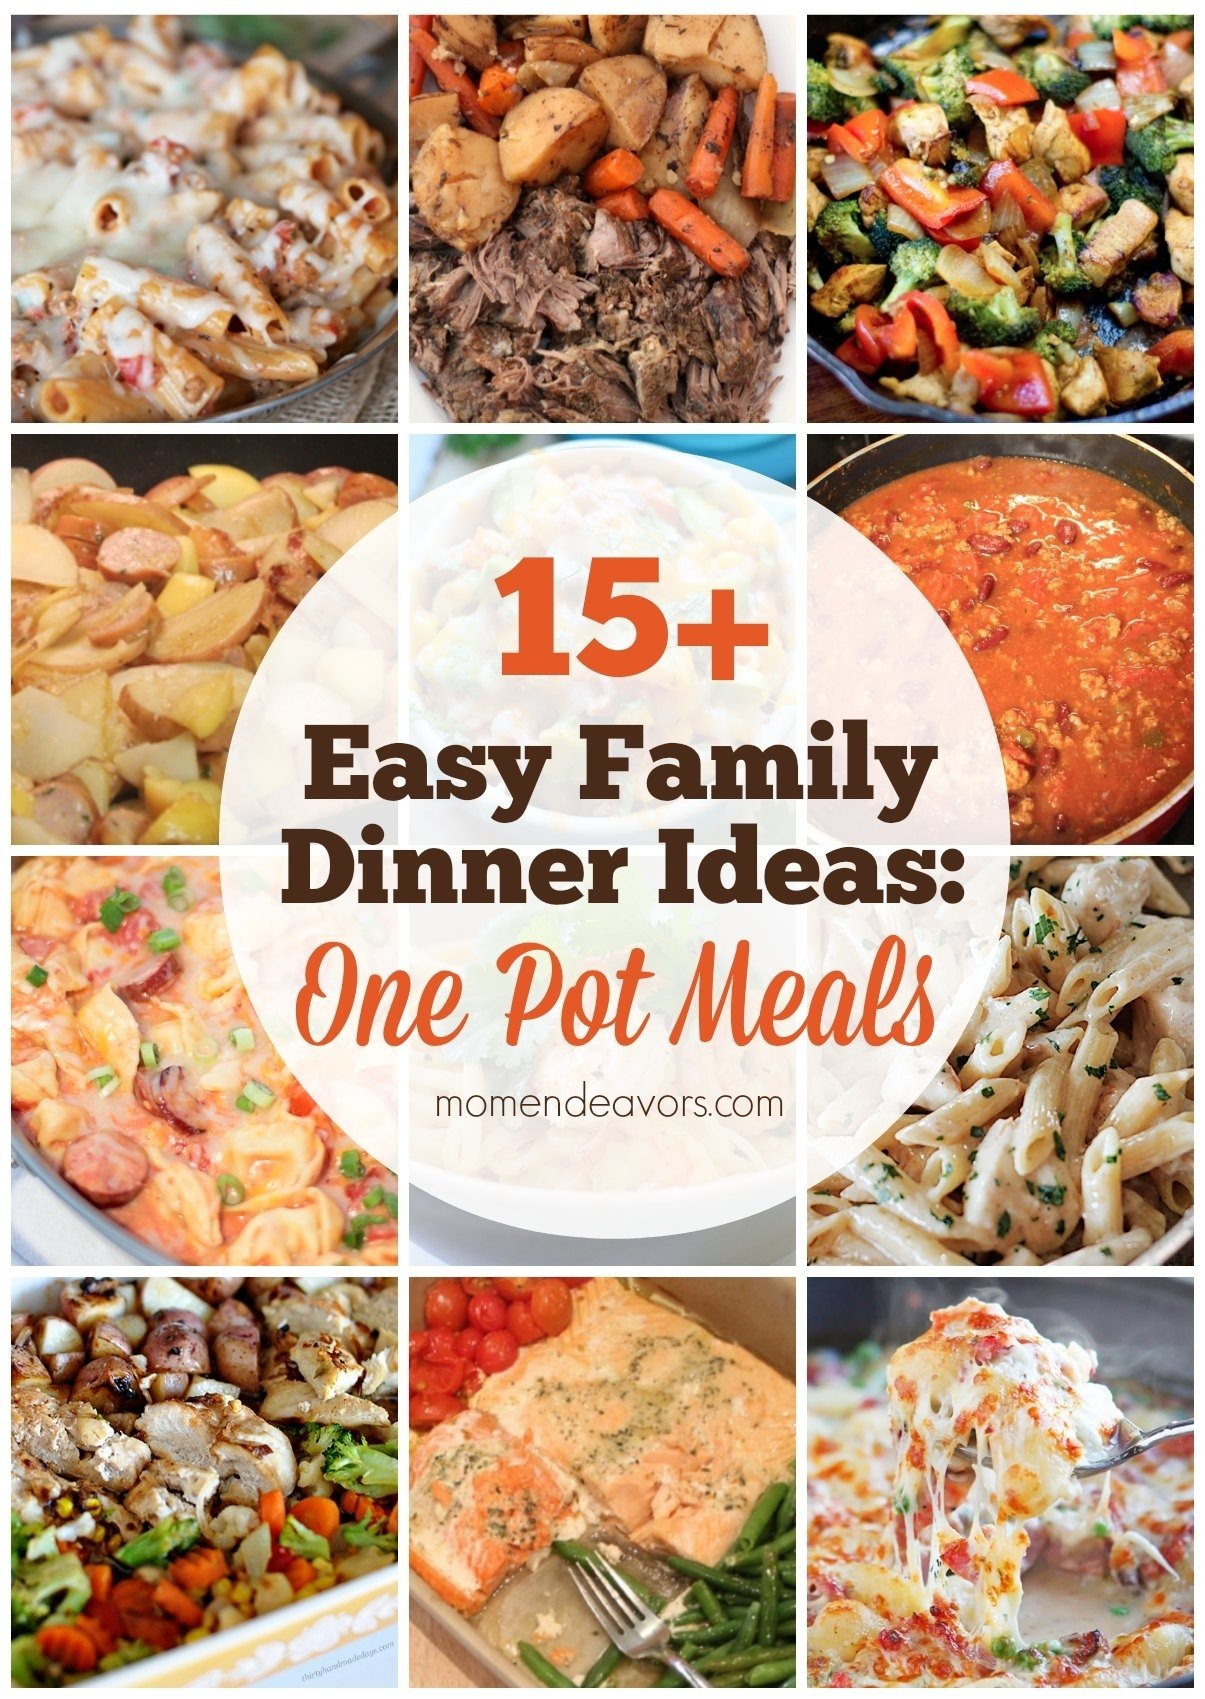 10 Nice Dinner Ideas For Family Of 4 4 easy family dinners to serve your family this week 1 2020